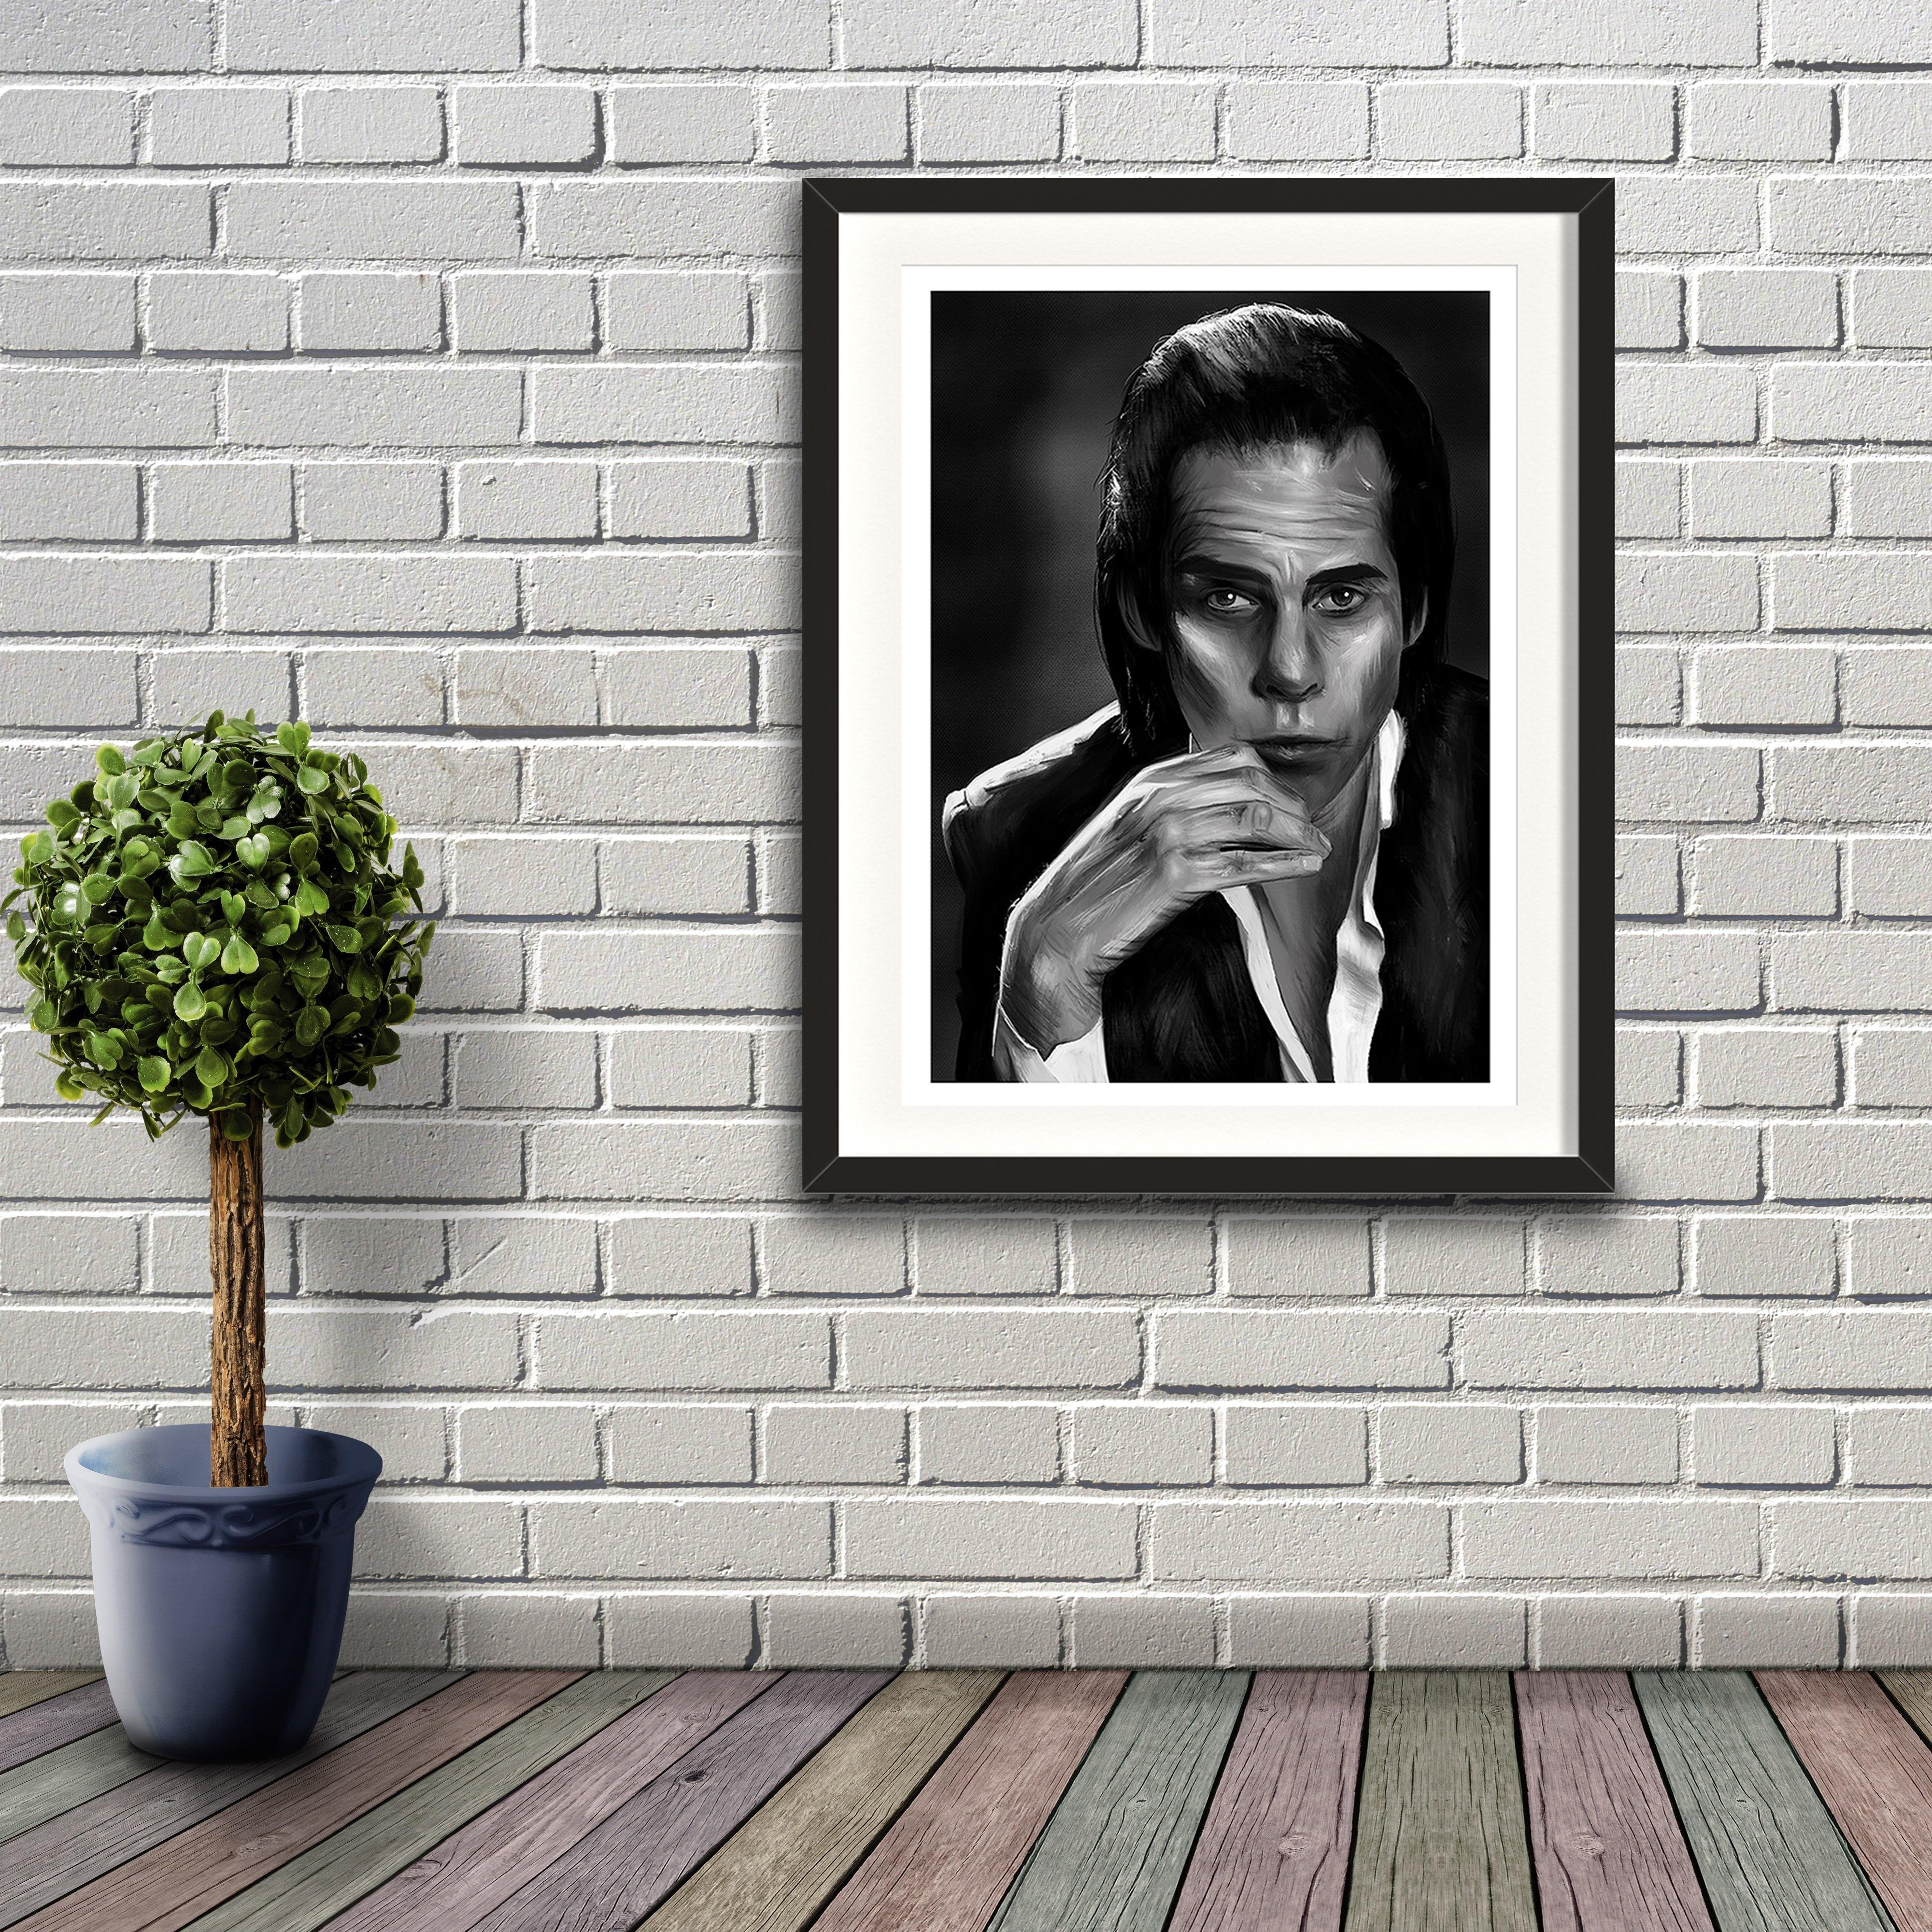 A digital painting called Nick Cave Study 1 by Lily Bourne showing black and white posed image of songwriter and performer Nick Cave. Artwork shown in a black frame hanging on a brick wall.